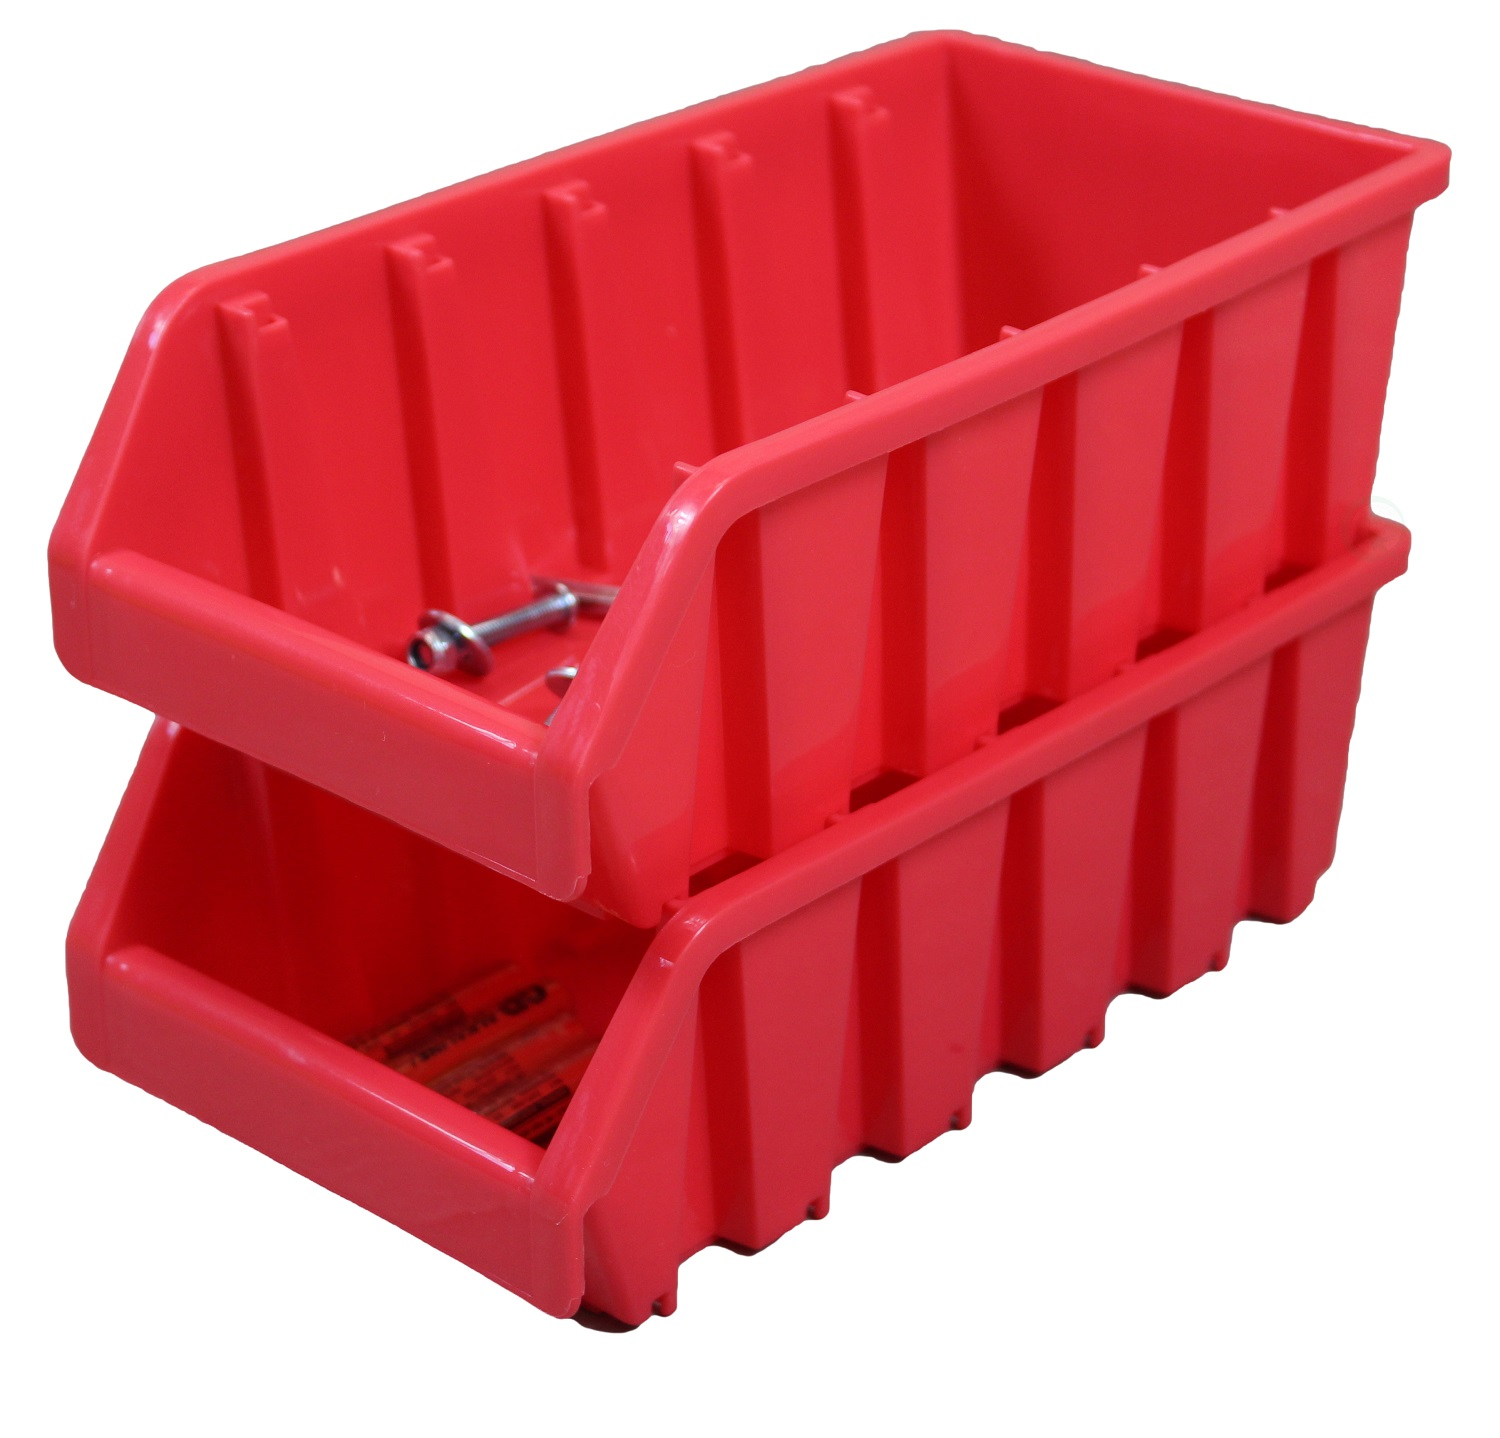 Set of 2 Plastic Storage Stacking Bins, Red